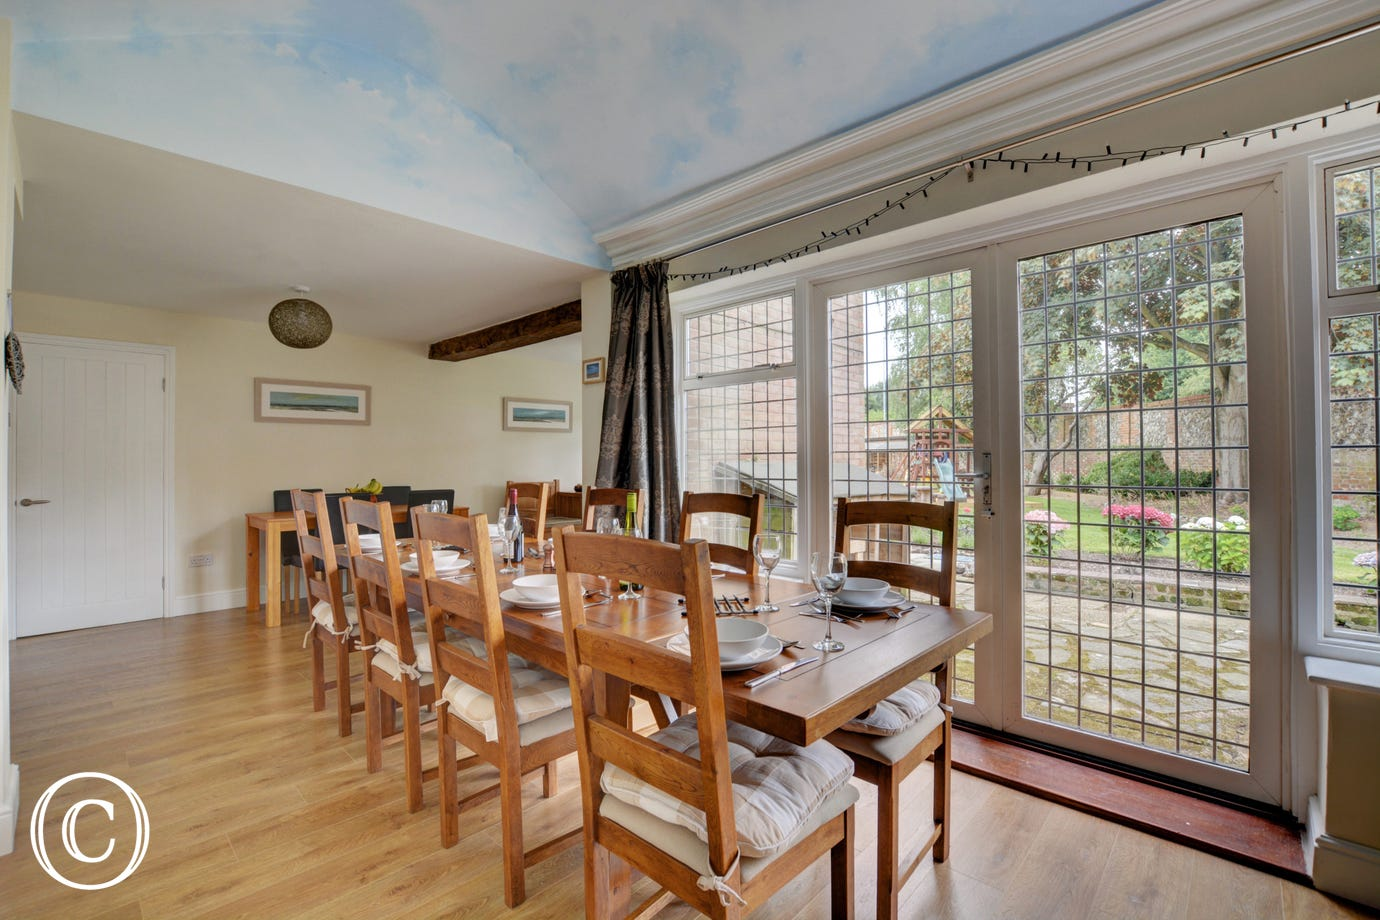 Dining table and chairs, window with views of garden